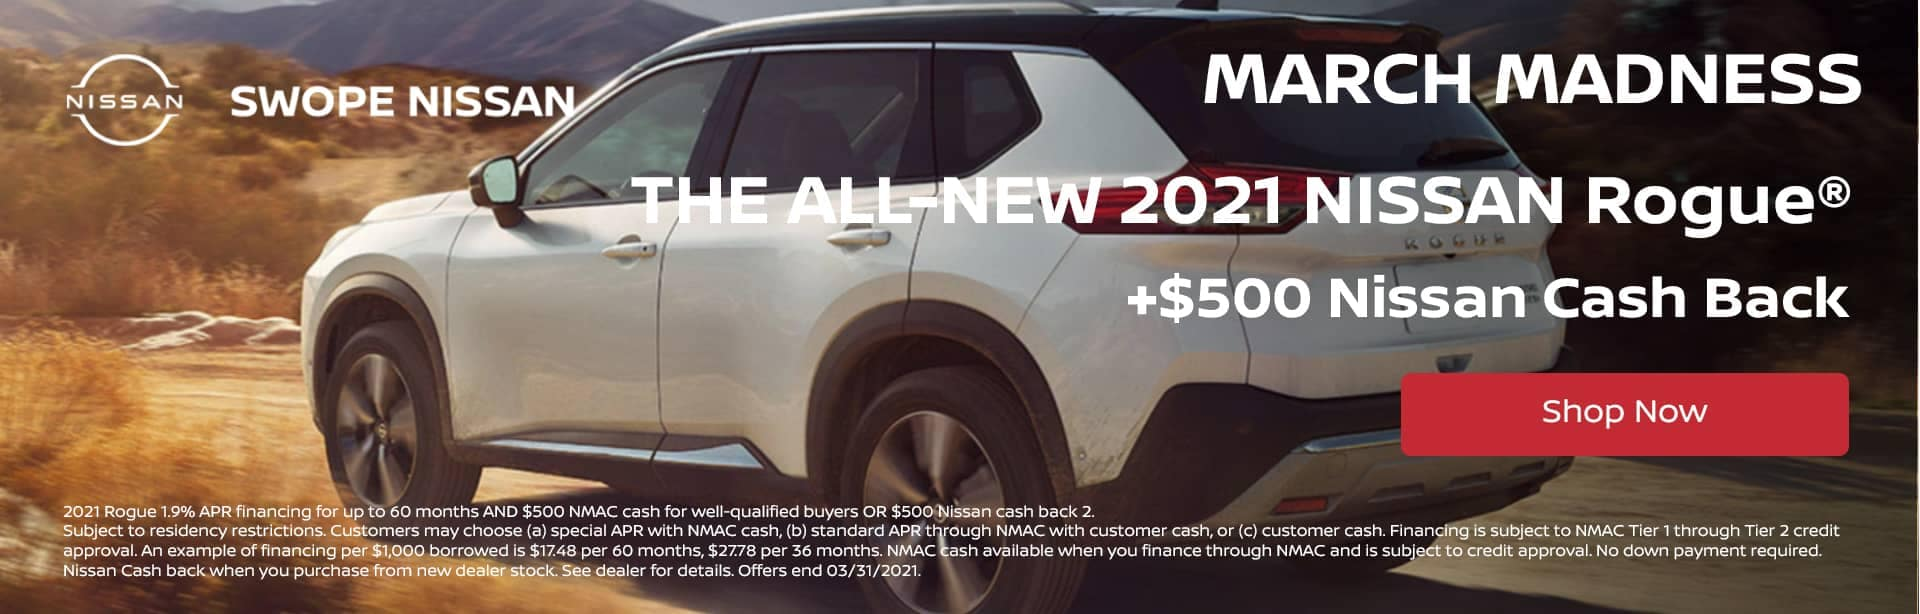 March Madness Deal - The All-New Nissan Rogue